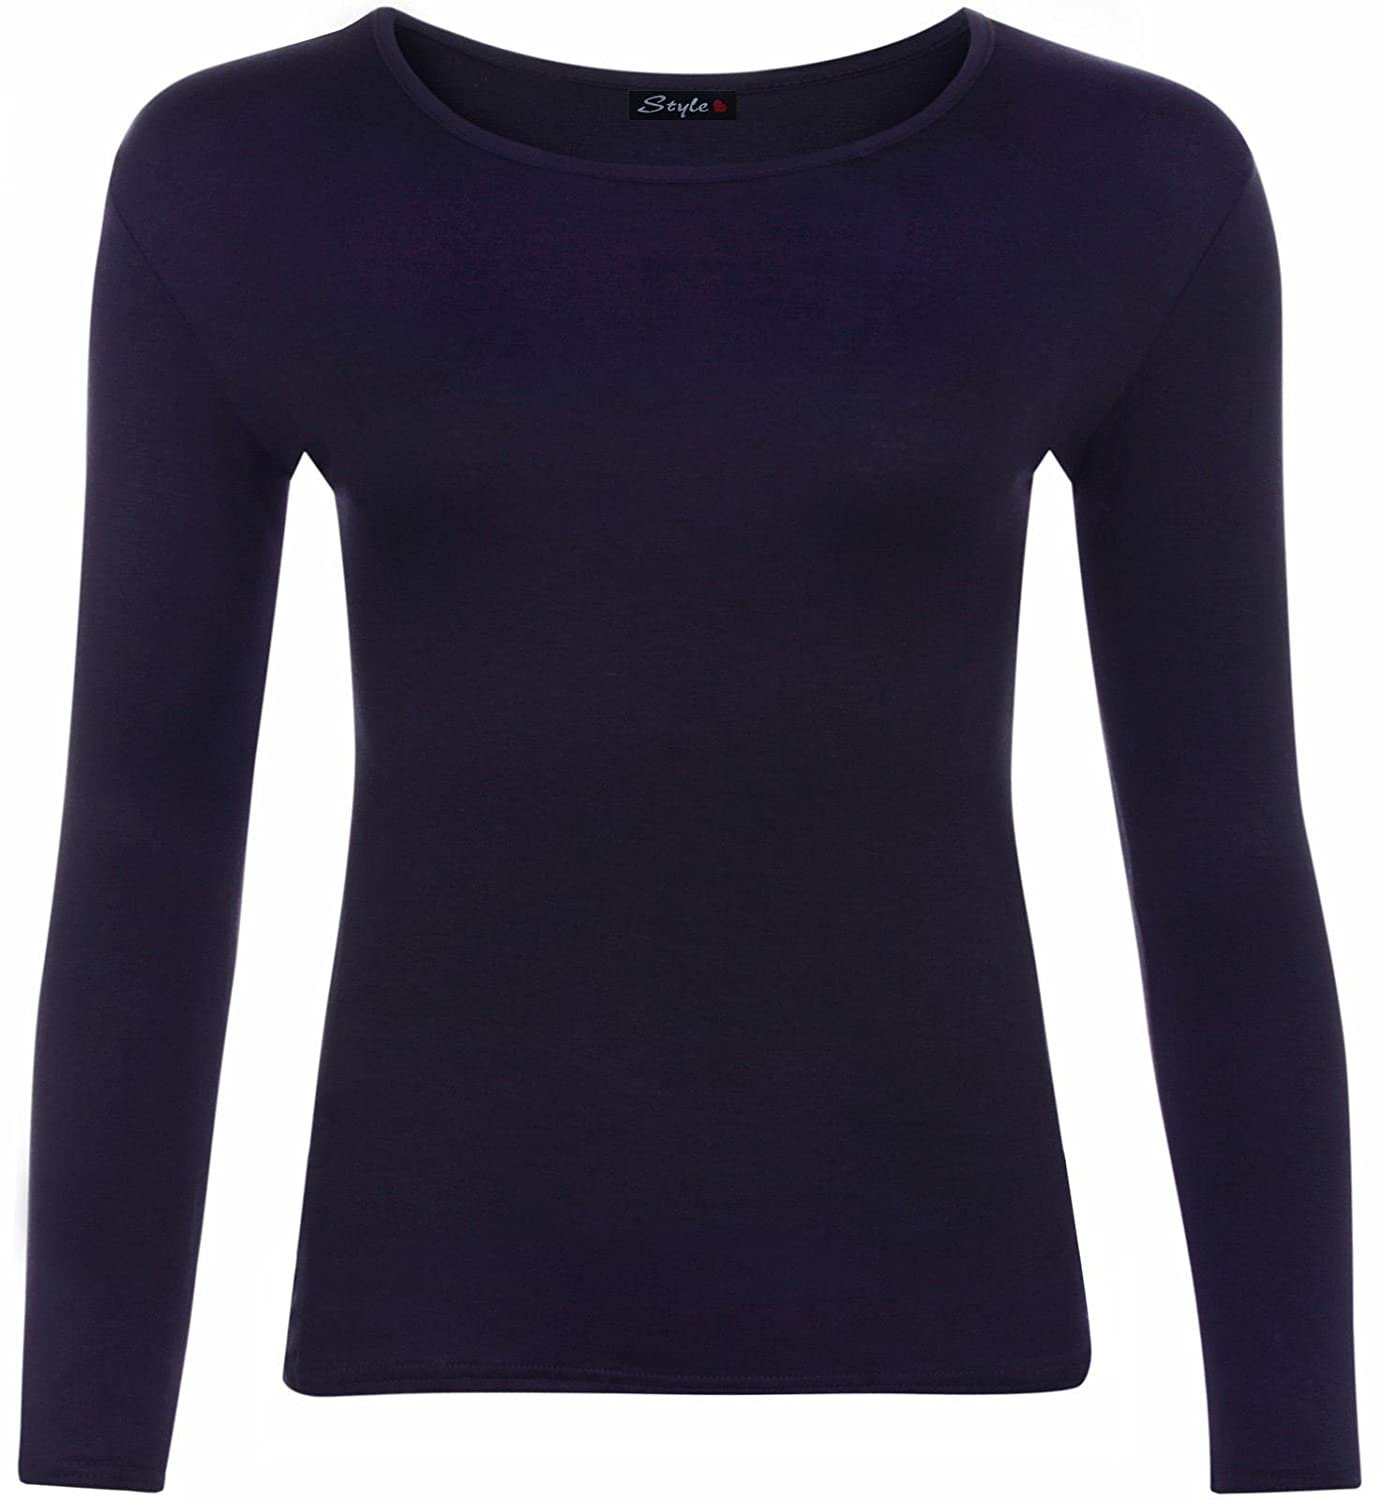 New Girls Long Sleeve Top Kids Plain All Colour Tee Tops T-Shirt Age 2-13 Years